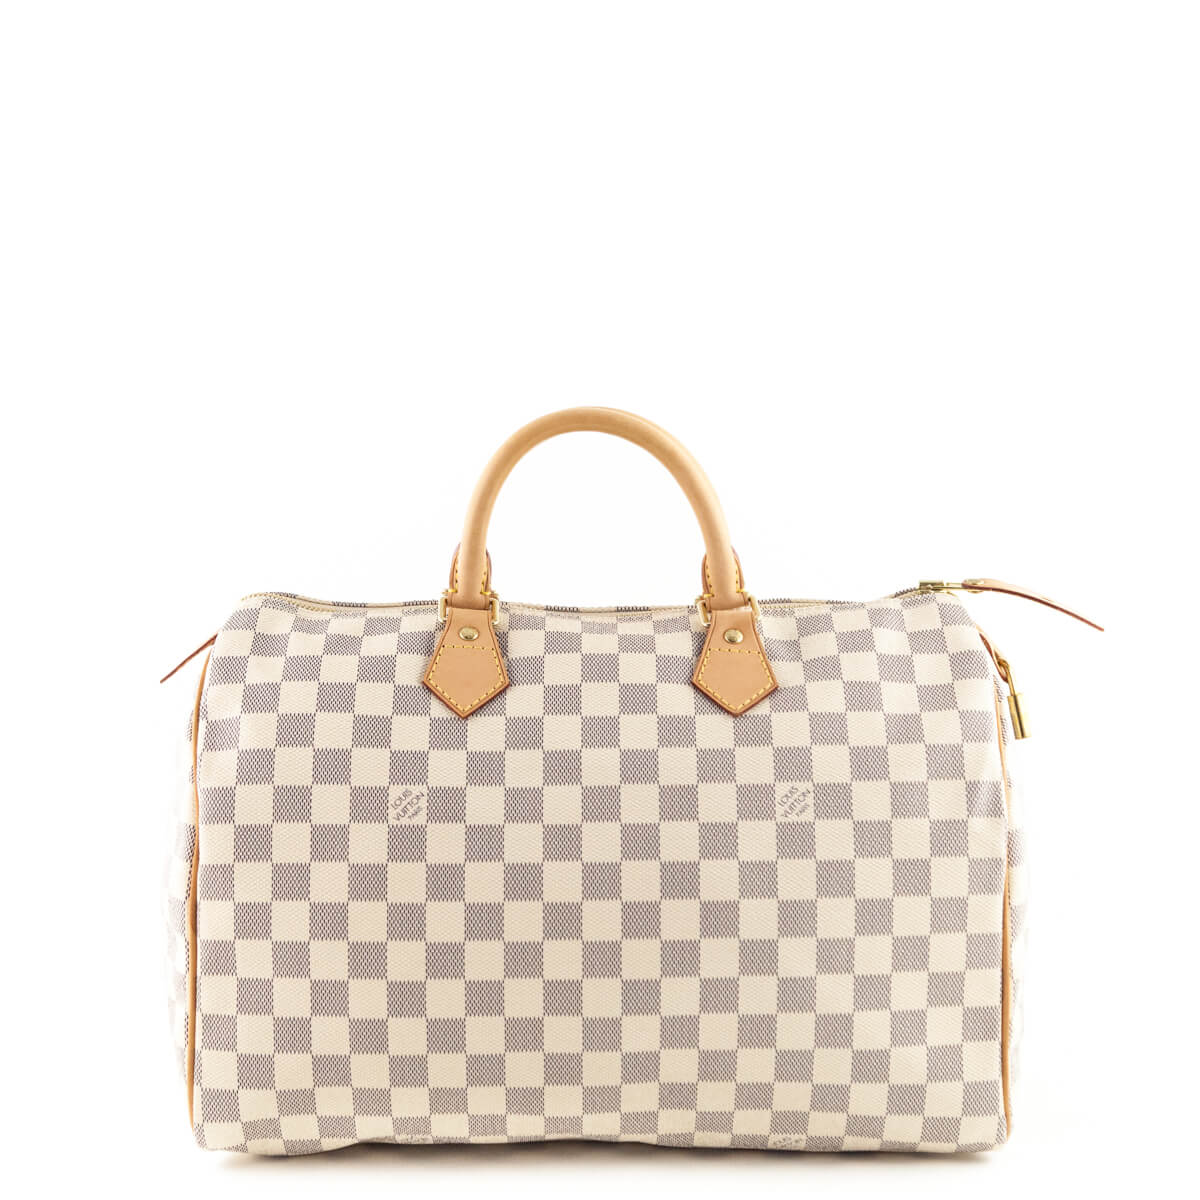 f18d4a7afa3 Louis Vuitton Damier Azur Speedy 35 - LOVE that BAG - Preowned Authentic  Designer Handbags ...